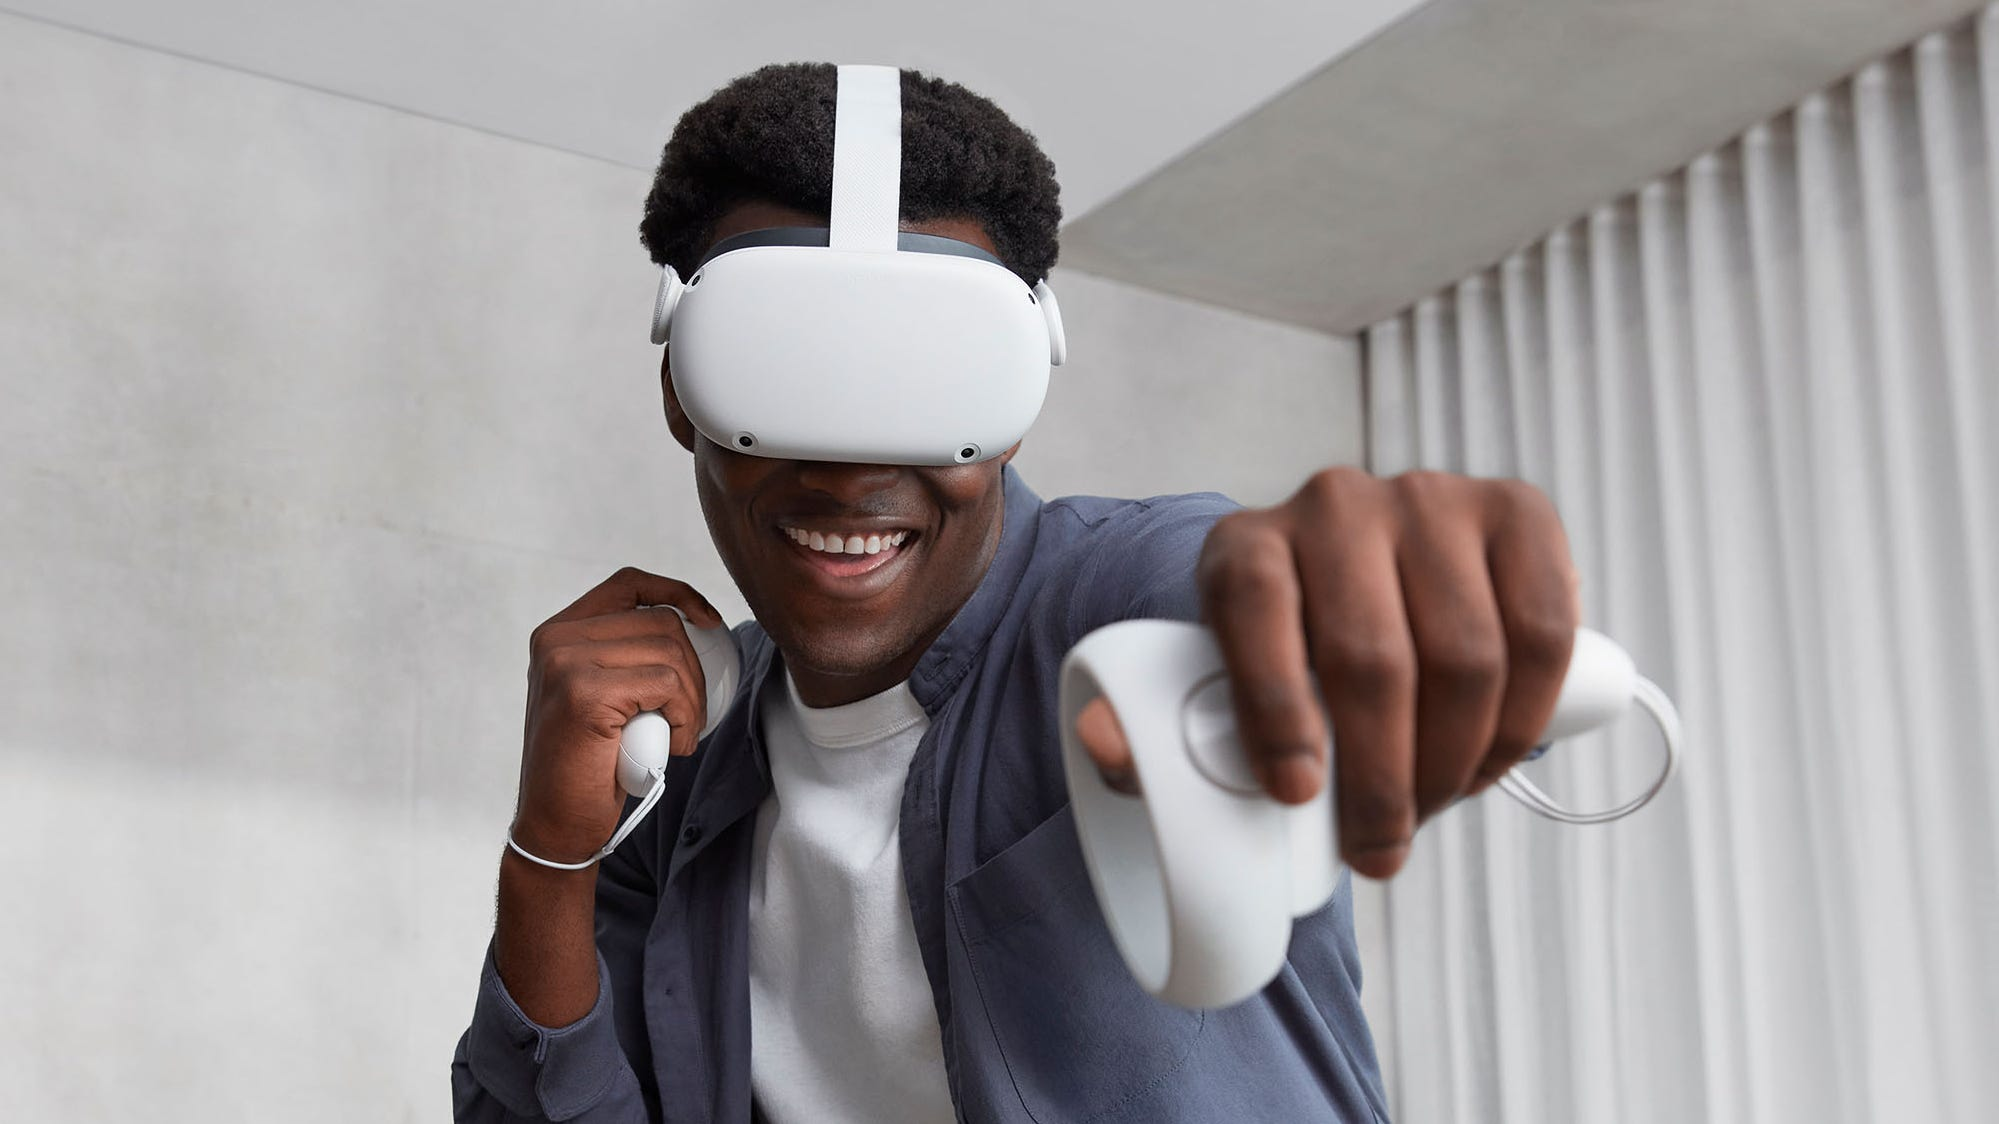 Oculus Quest 2 is cable-free and can download and stores content via WiFi.